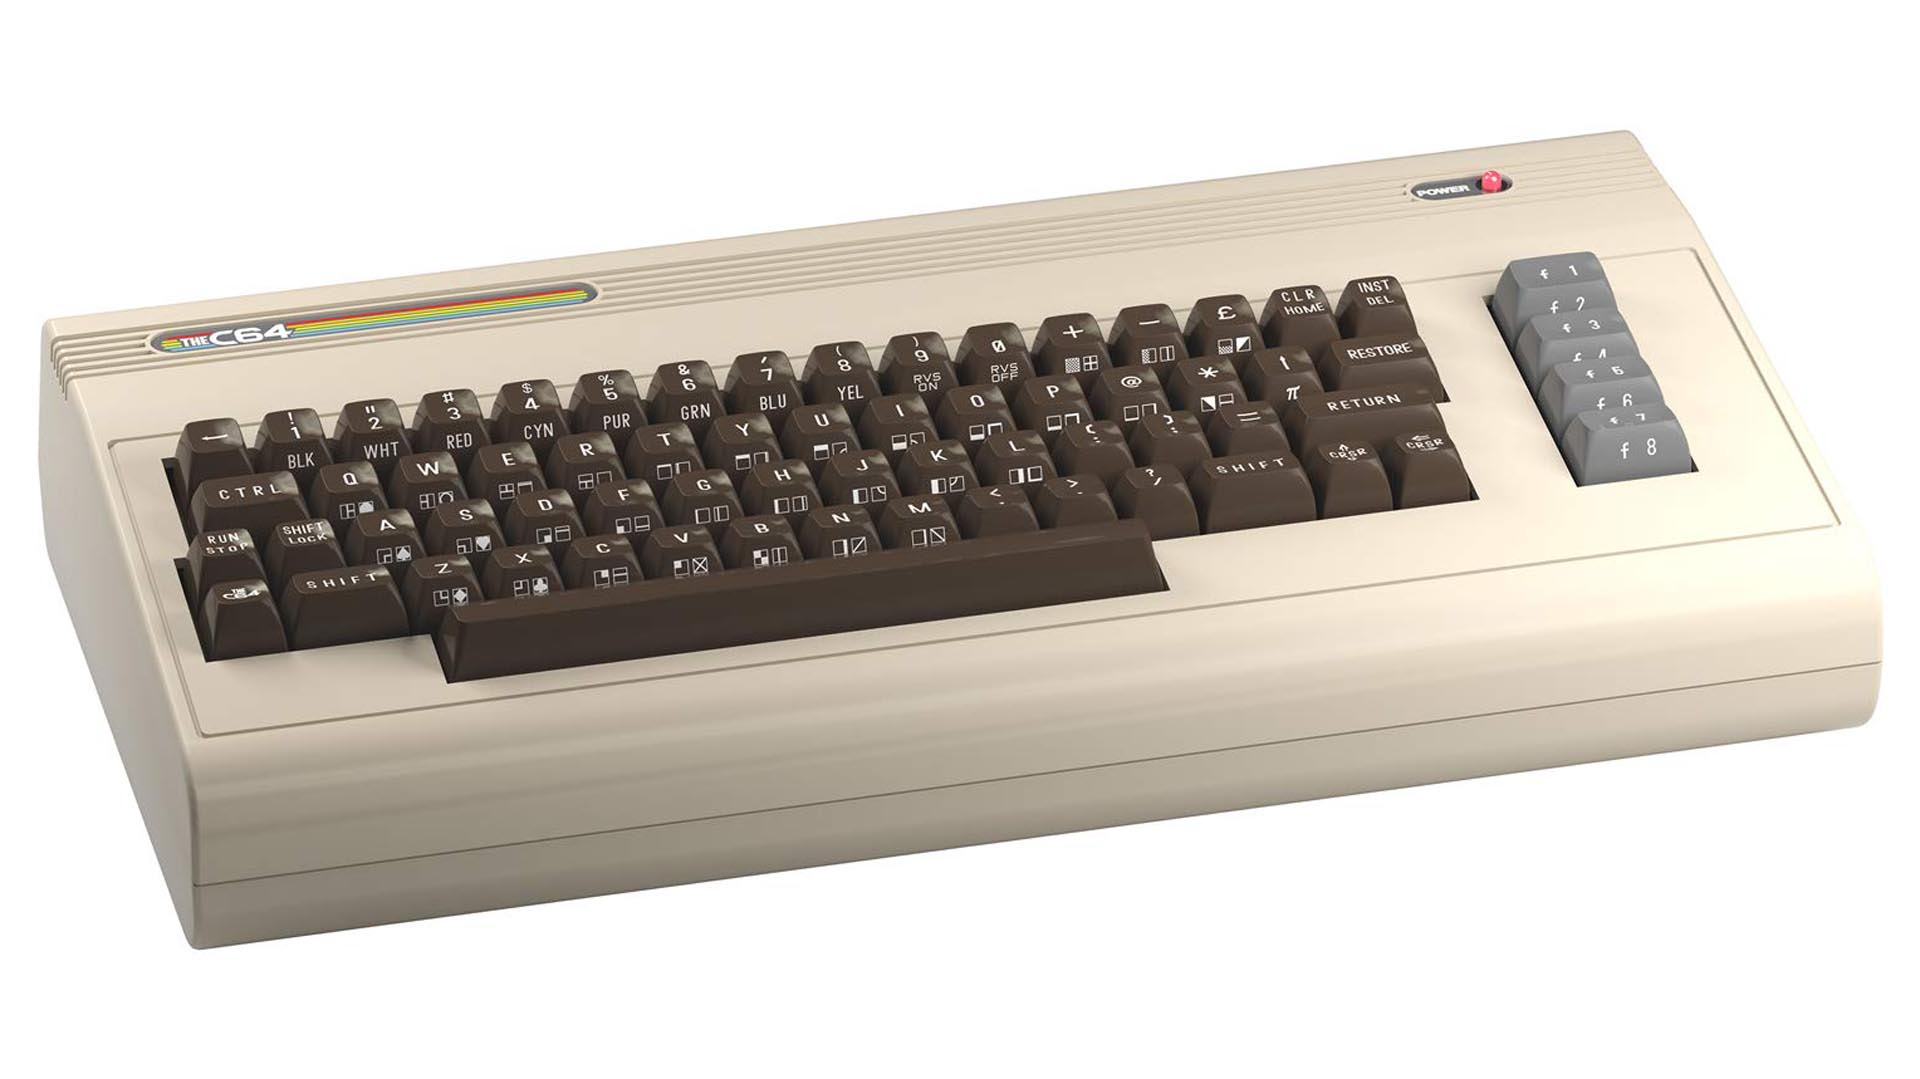 The Commodore 64 returns, full-sized and with operational